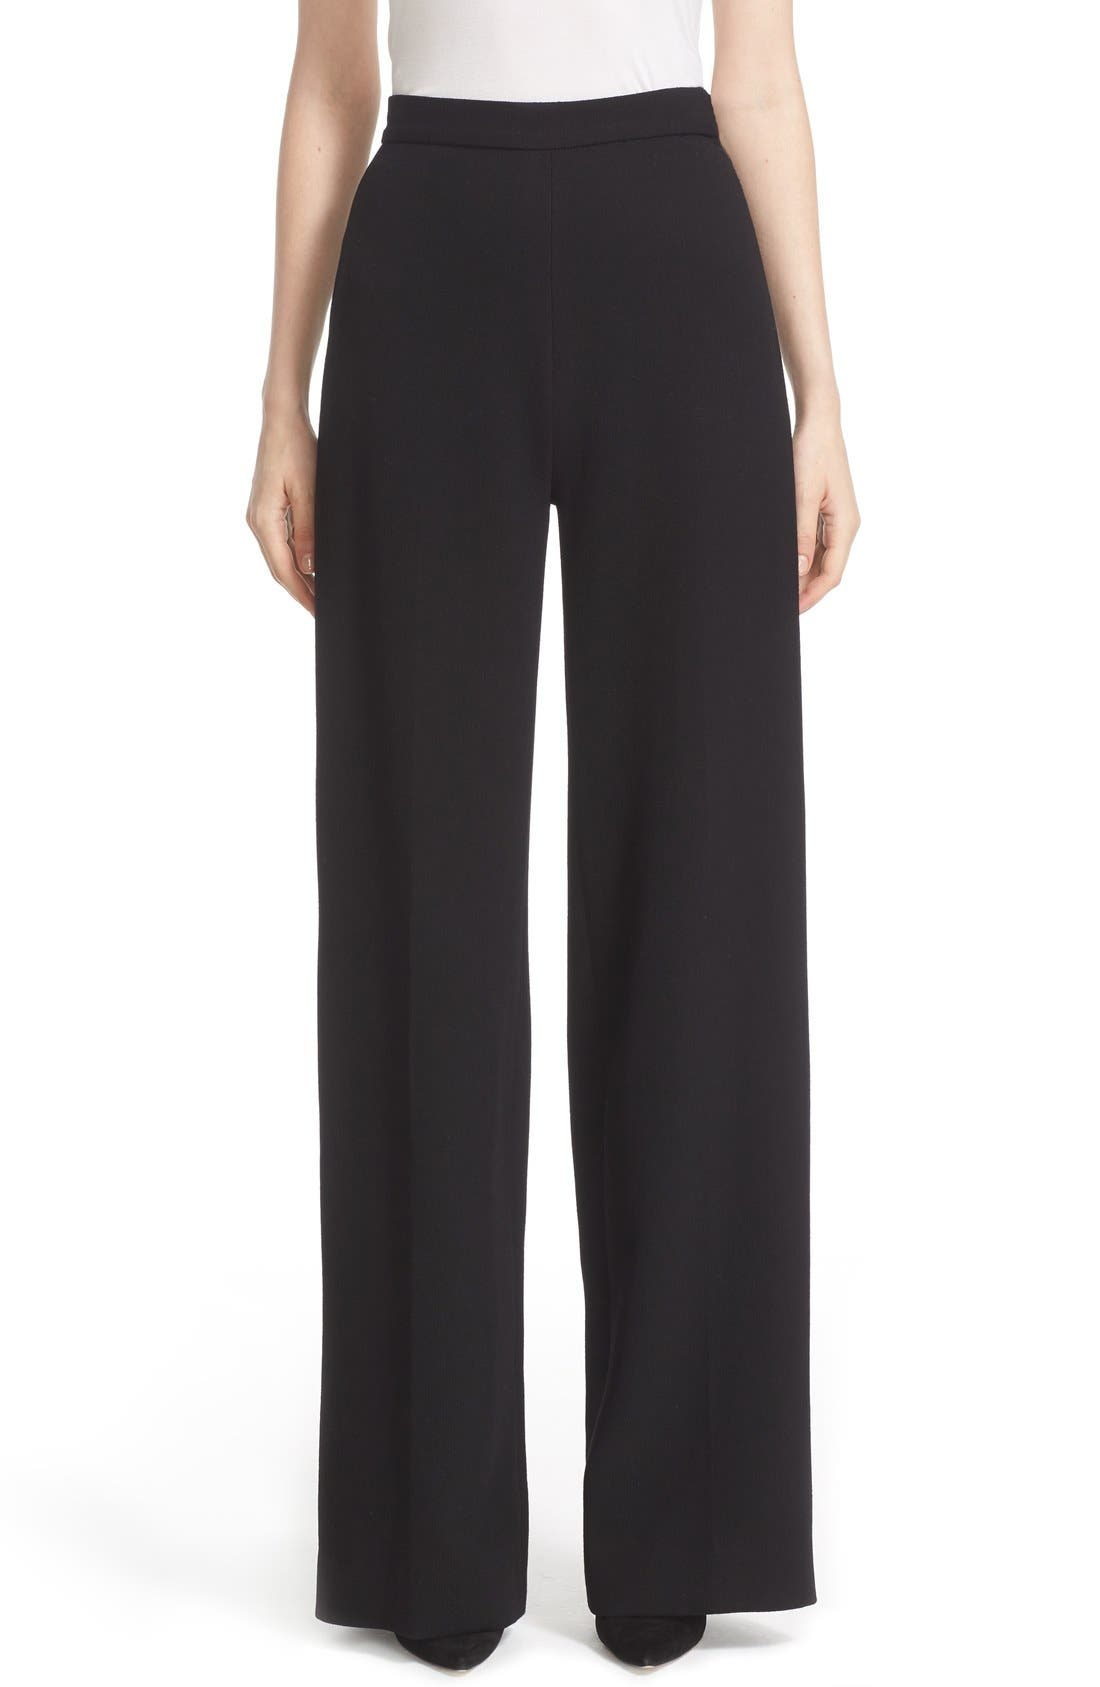 Stretch Wool High Waist Pants,                         Main,                         color, Black